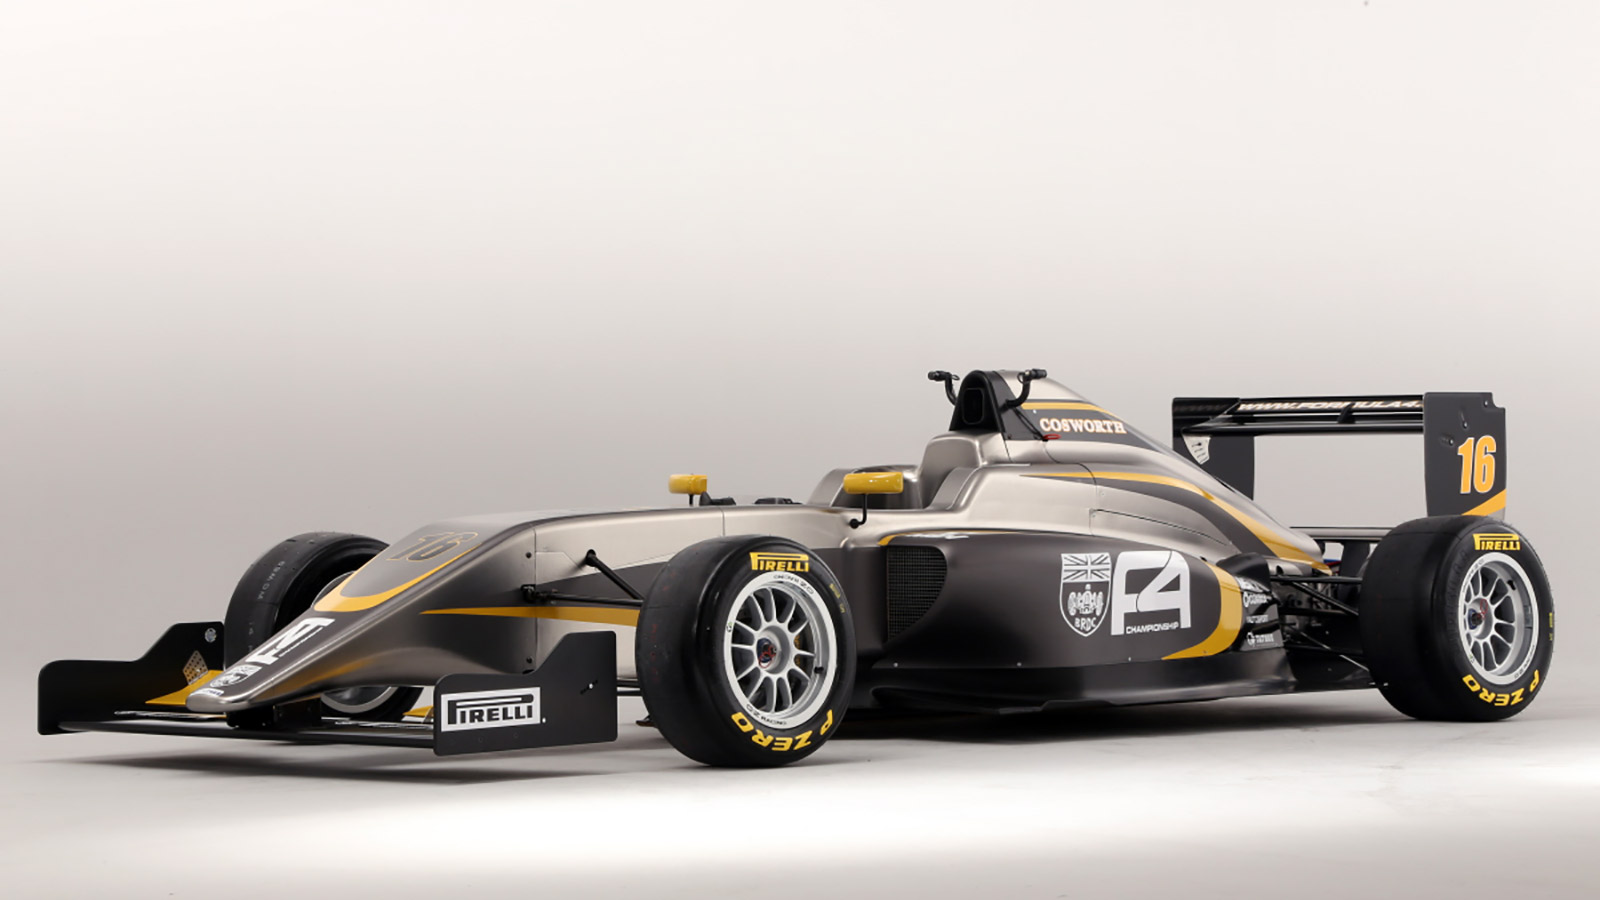 The replacement for the existing chassis is based on the official FIA blueprint for F4 categories across the globe.